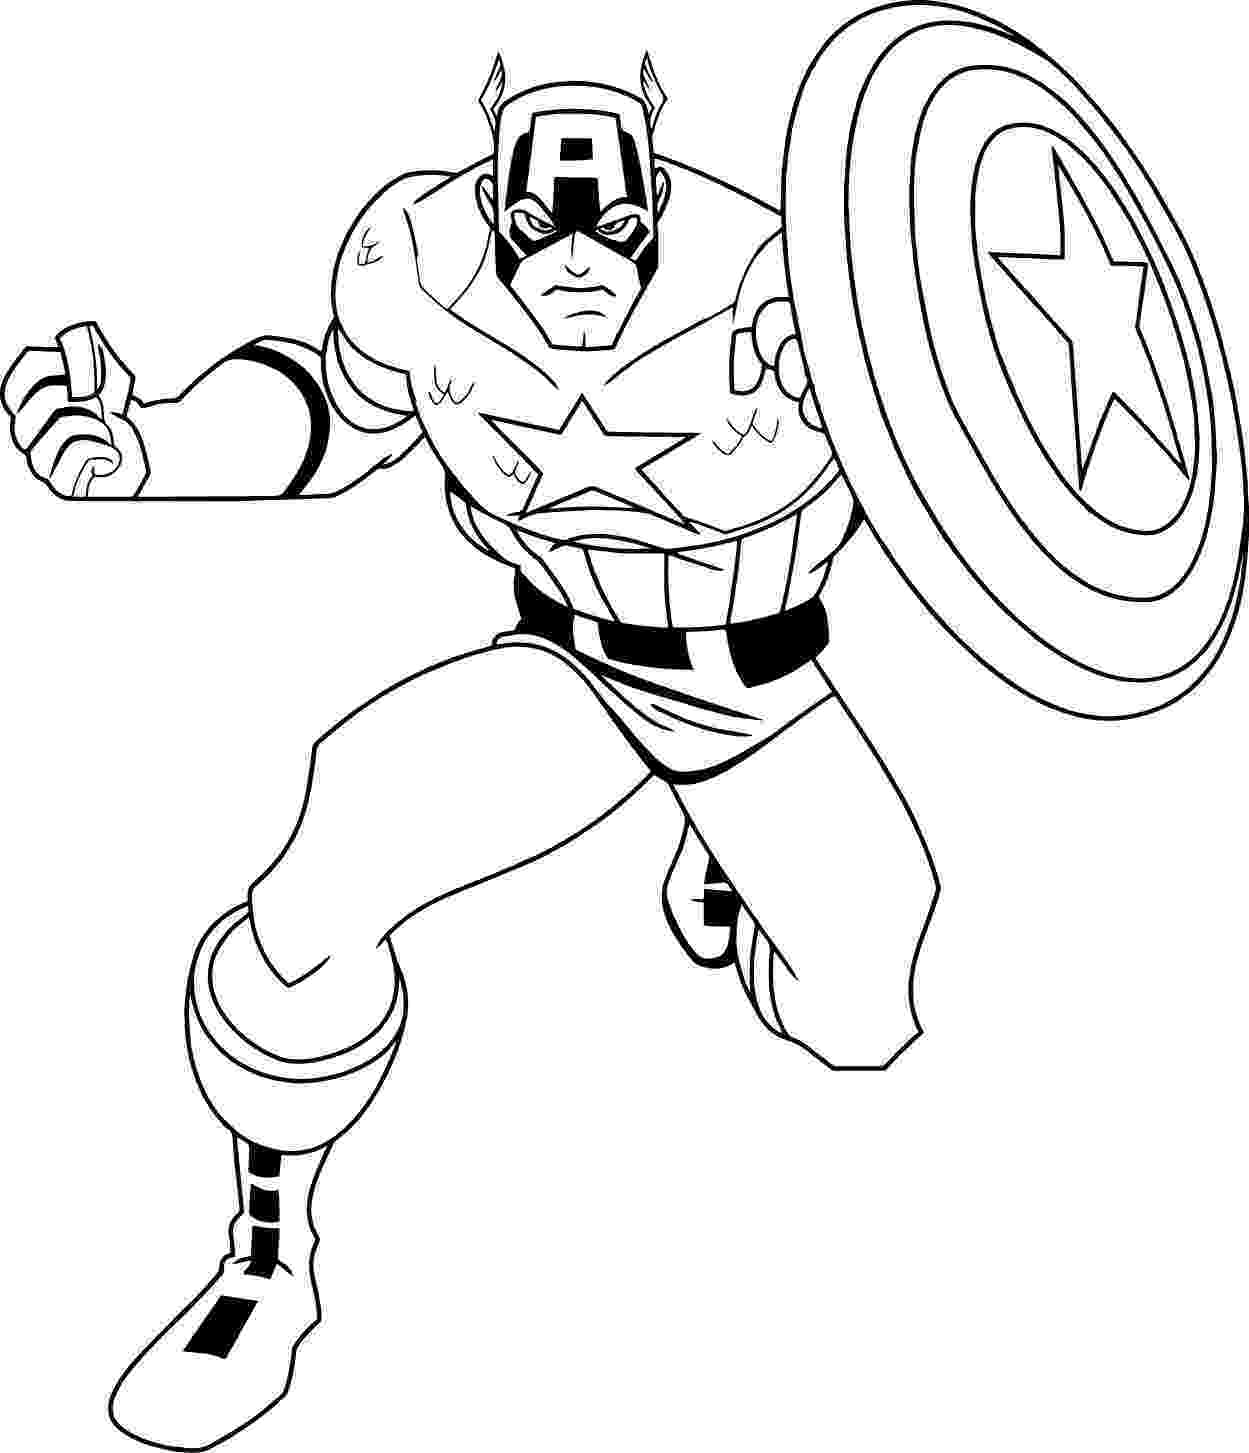 captain america colouring pages captain america captain america kids coloring pages captain colouring america pages